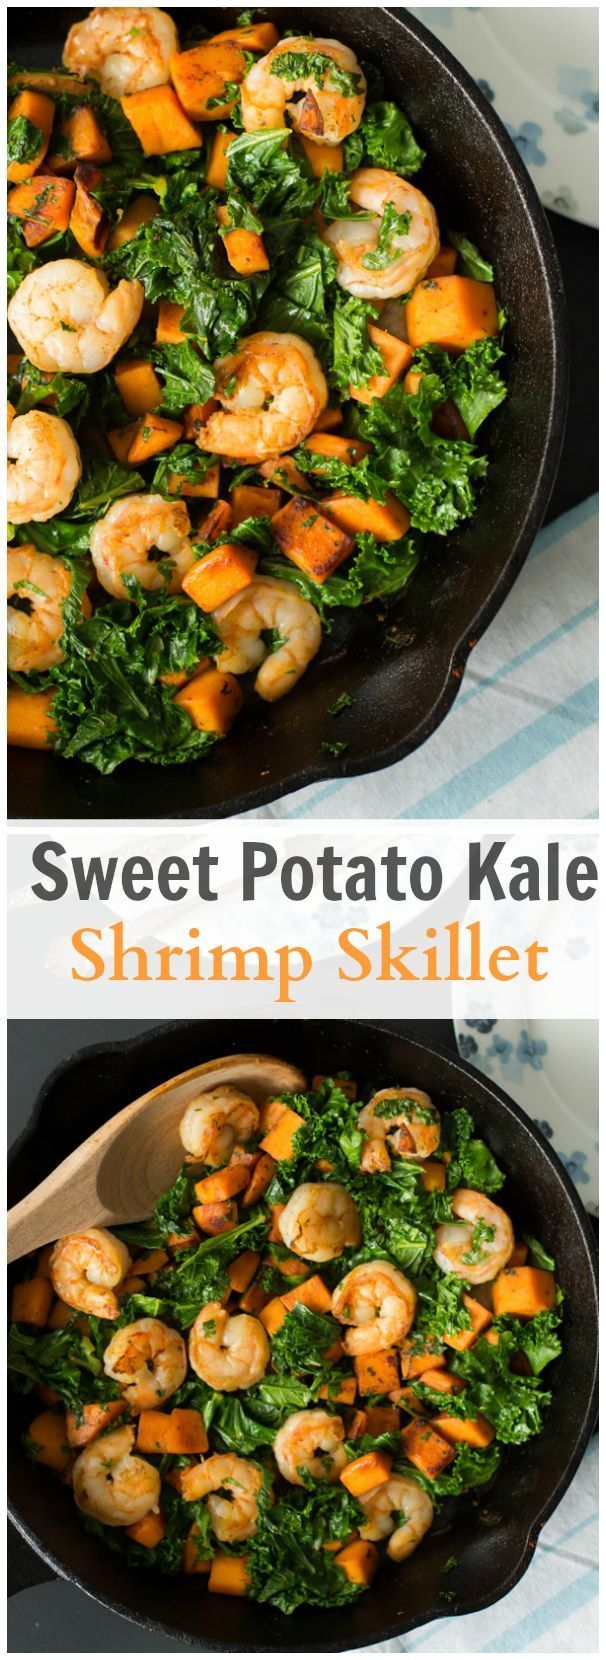 This Sweet Potato, Kale and Shrimp Skillet is Paleo, gluten-free and healthy easy dish without scarfing in flavour! Enjoy! #paleo #grainfree #glutenfree